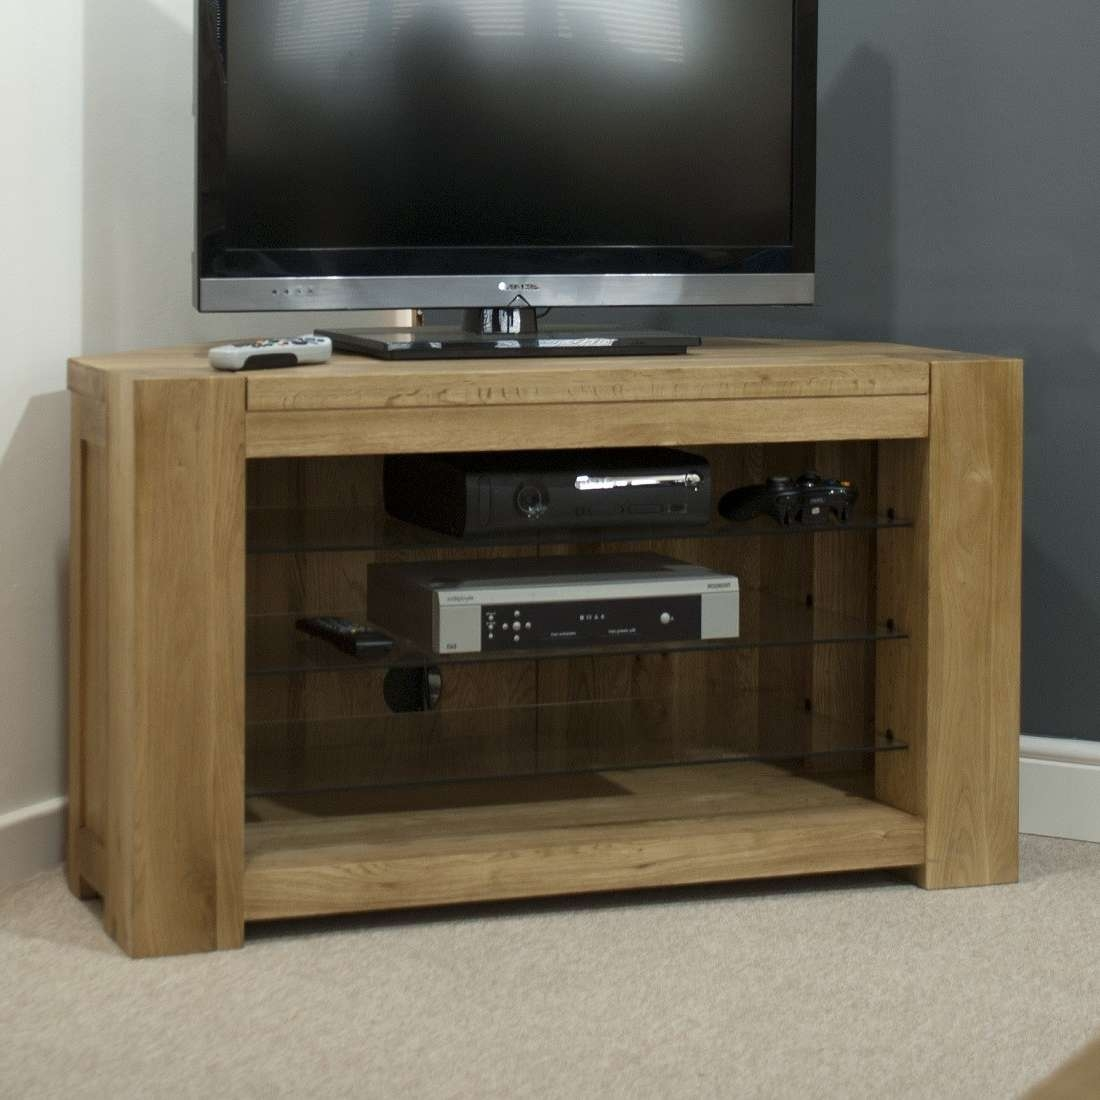 Trend Solid Oak Corner Tv Unit | Oak Furniture Uk Pertaining To Oak Corner Tv Cabinets (View 17 of 20)